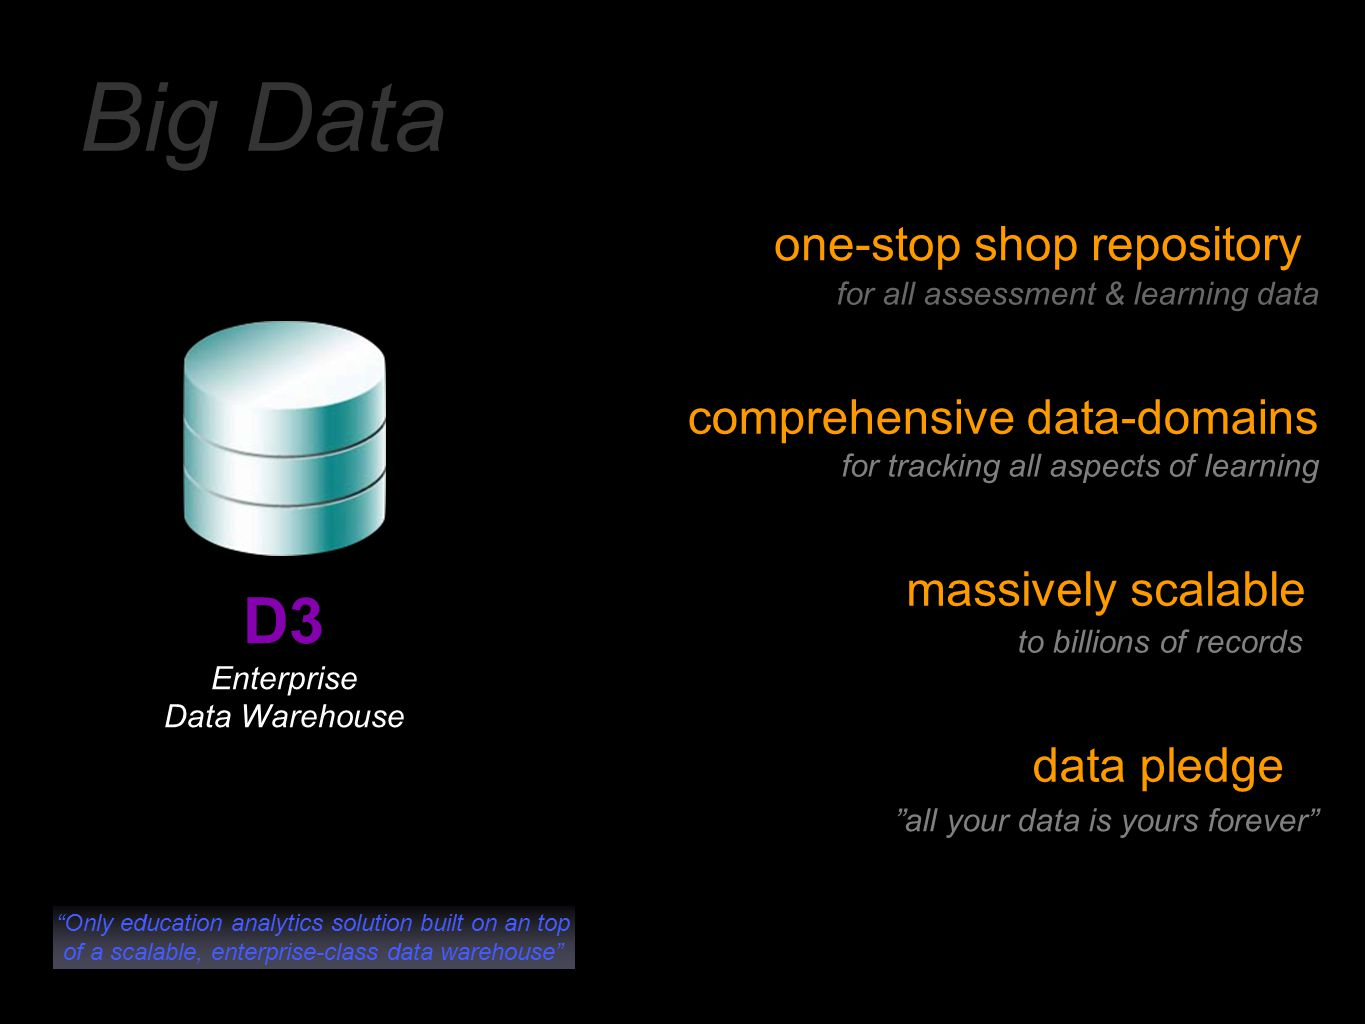 Big Data Only education analytics solution built on an top of a scalable, enterprise-class data warehouse D3 Enterprise Data Warehouse one-stop shop repository for all assessment & learning data comprehensive data-domains for tracking all aspects of learning massively scalable to billions of records data pledge all your data is yours forever